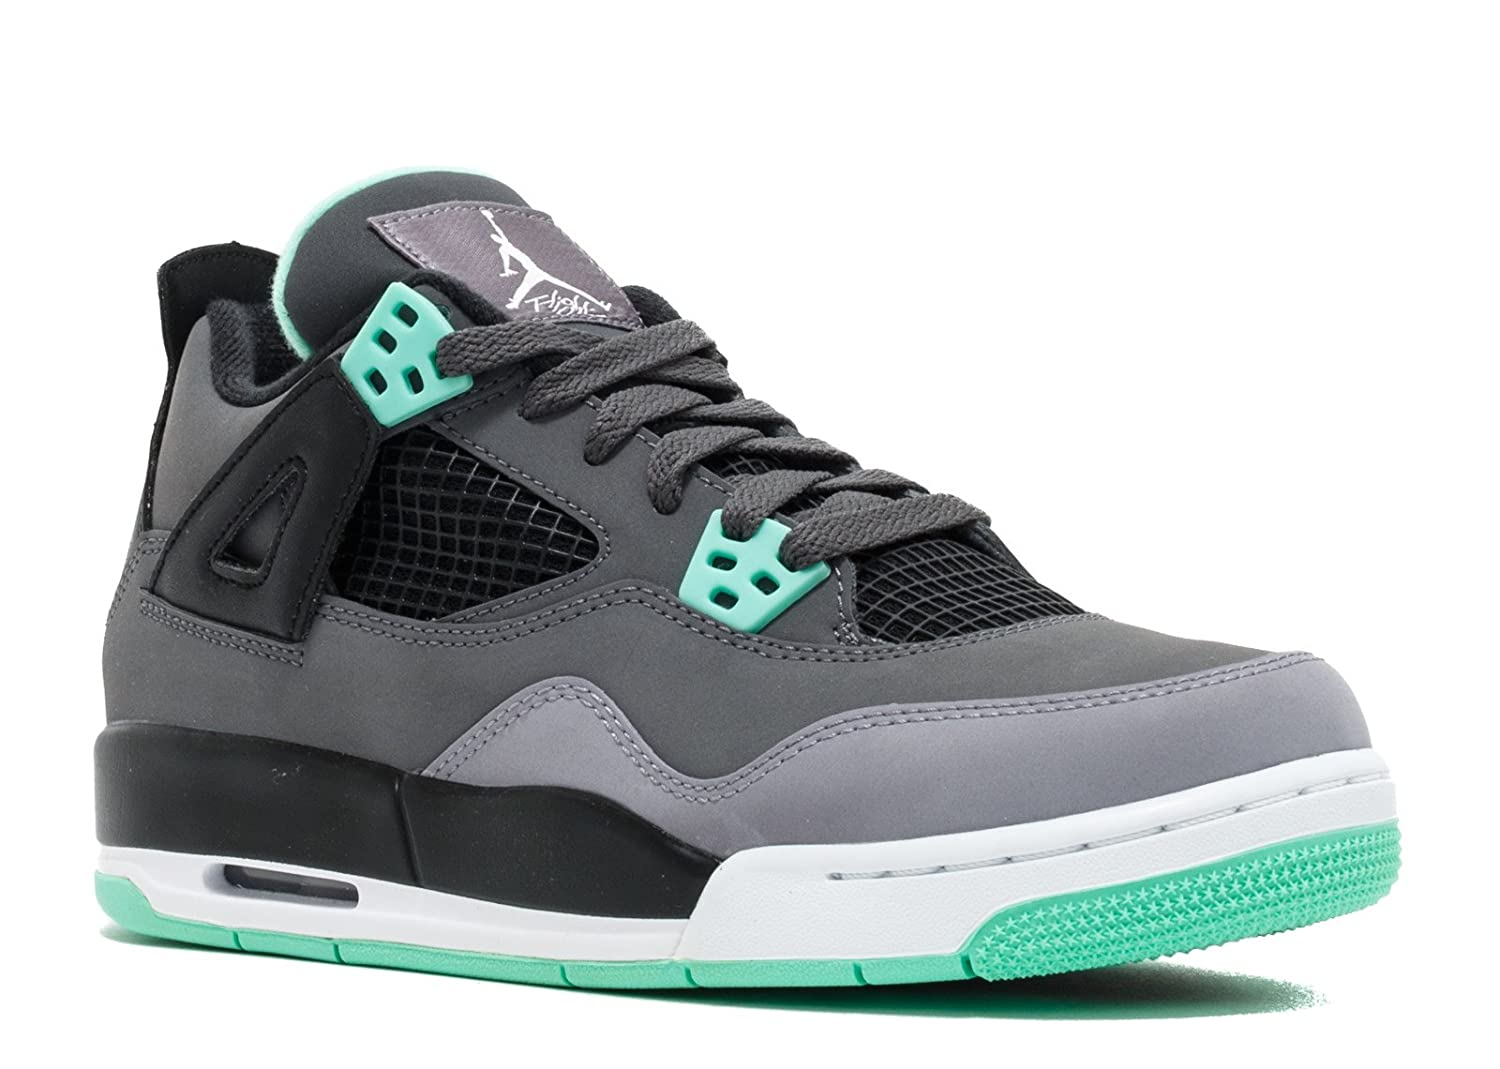 Nike Air Jordan 4 Retro (GS) Green Glow - 408452-033 -  6